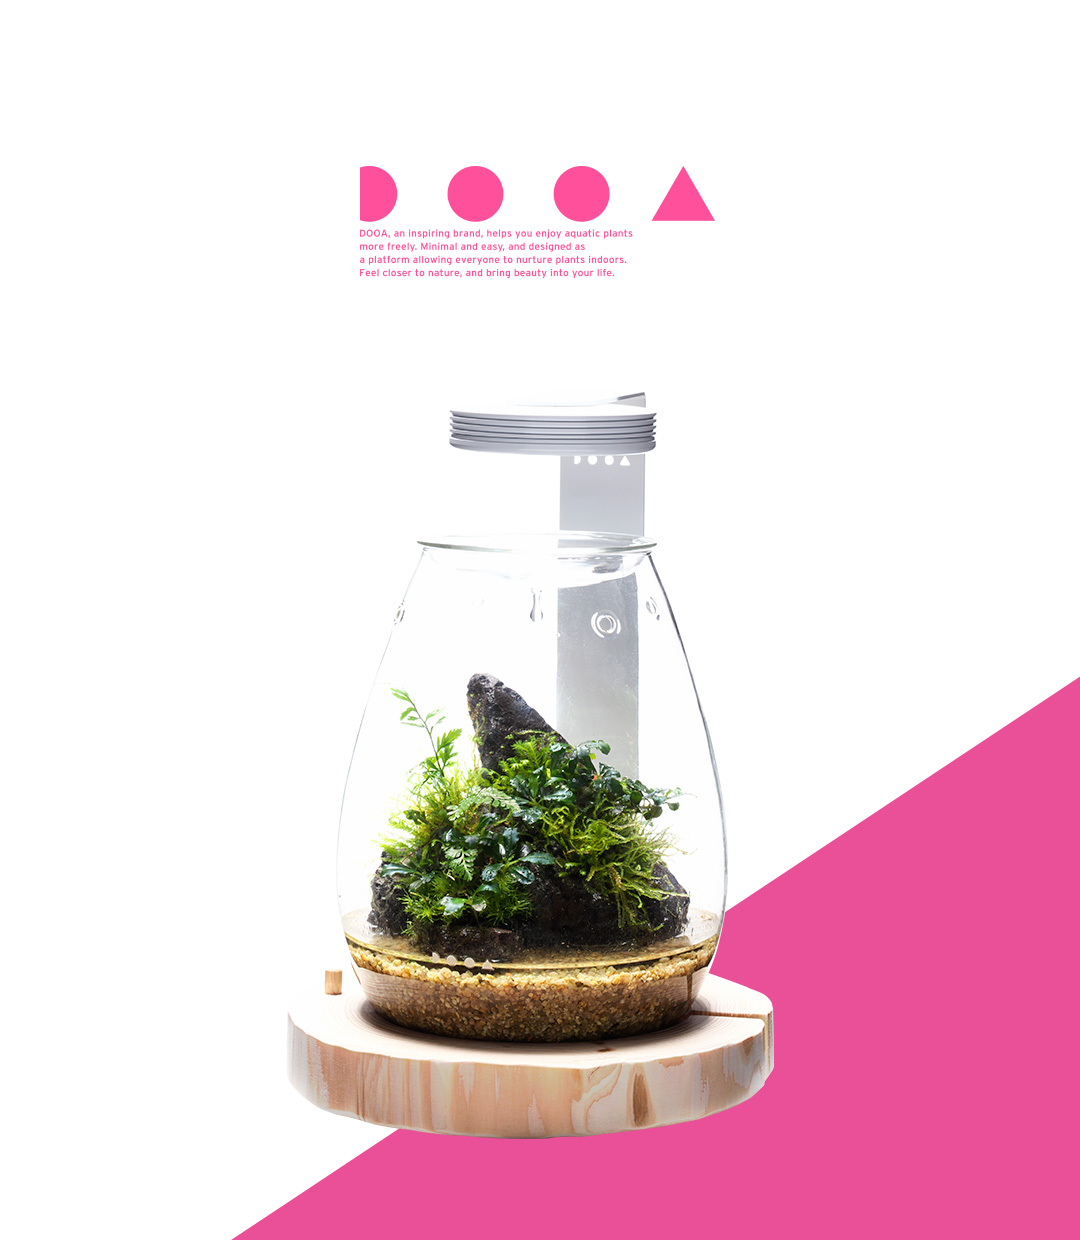 DOOA GLASS POT SHIZUKU 'Bring the Healing Power of Forest into A New Shape'